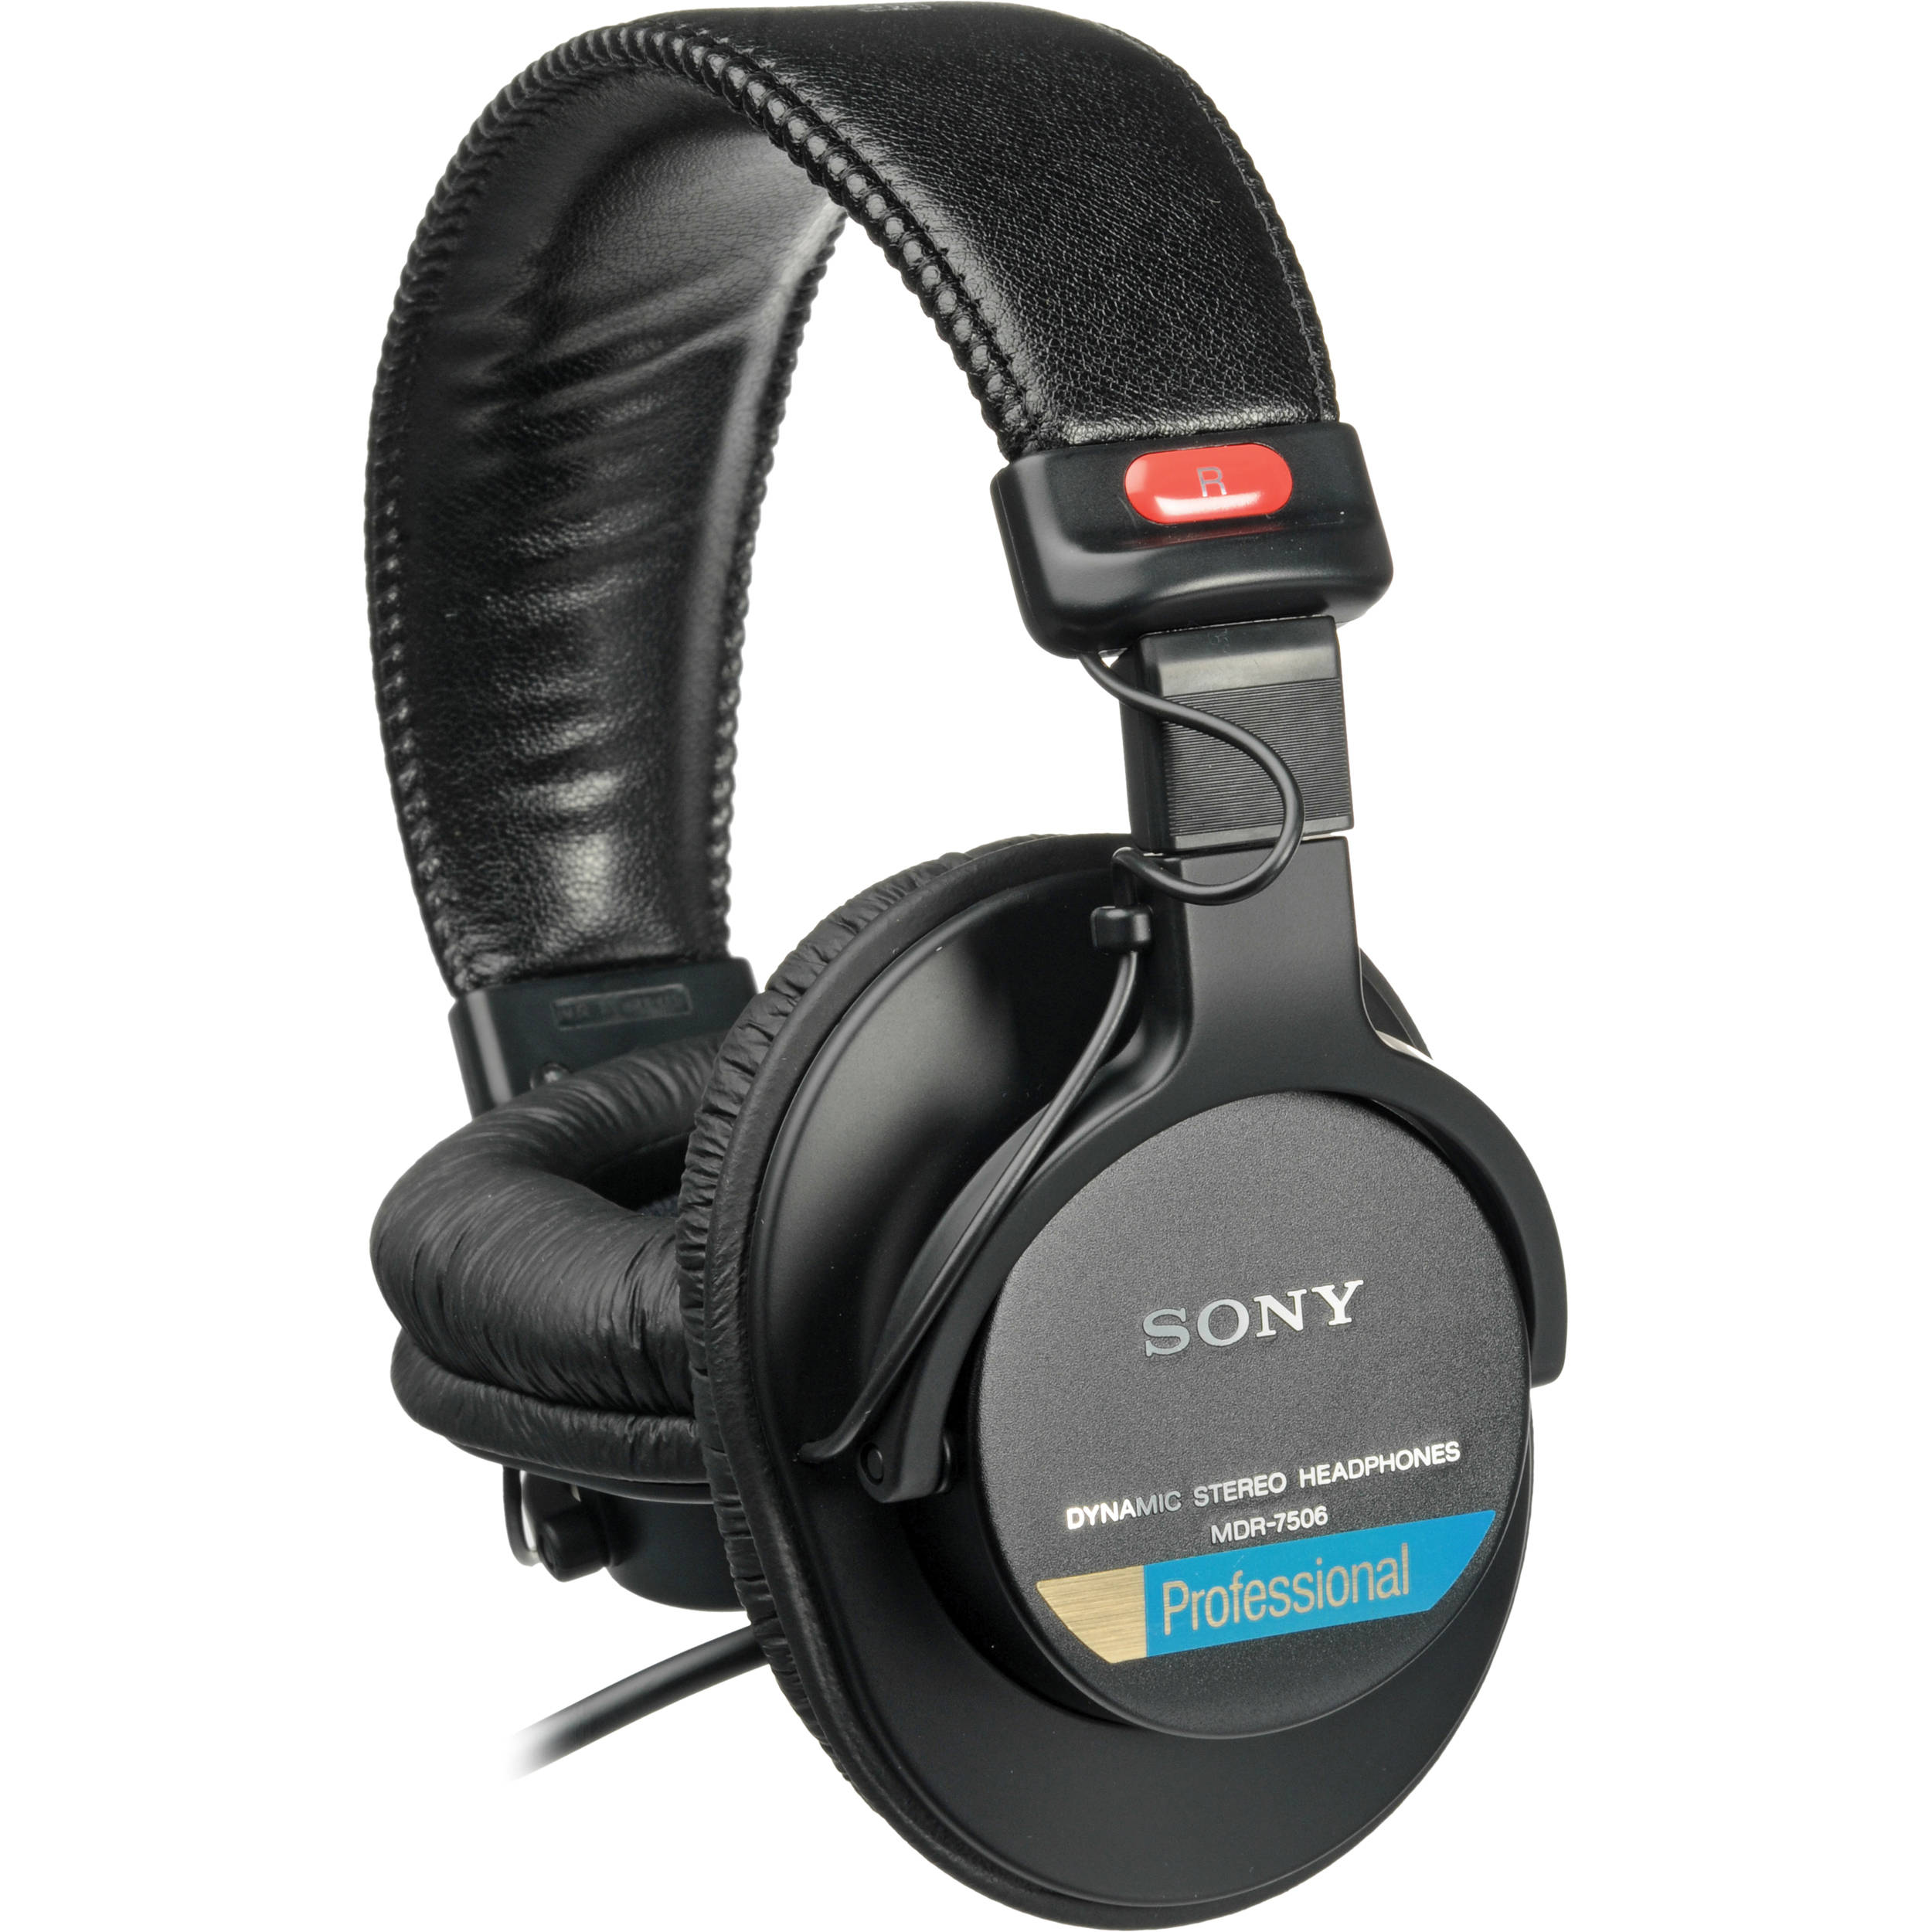 Sony MDR-7506 Closed Cup Stereo Headphones - Masque Sound